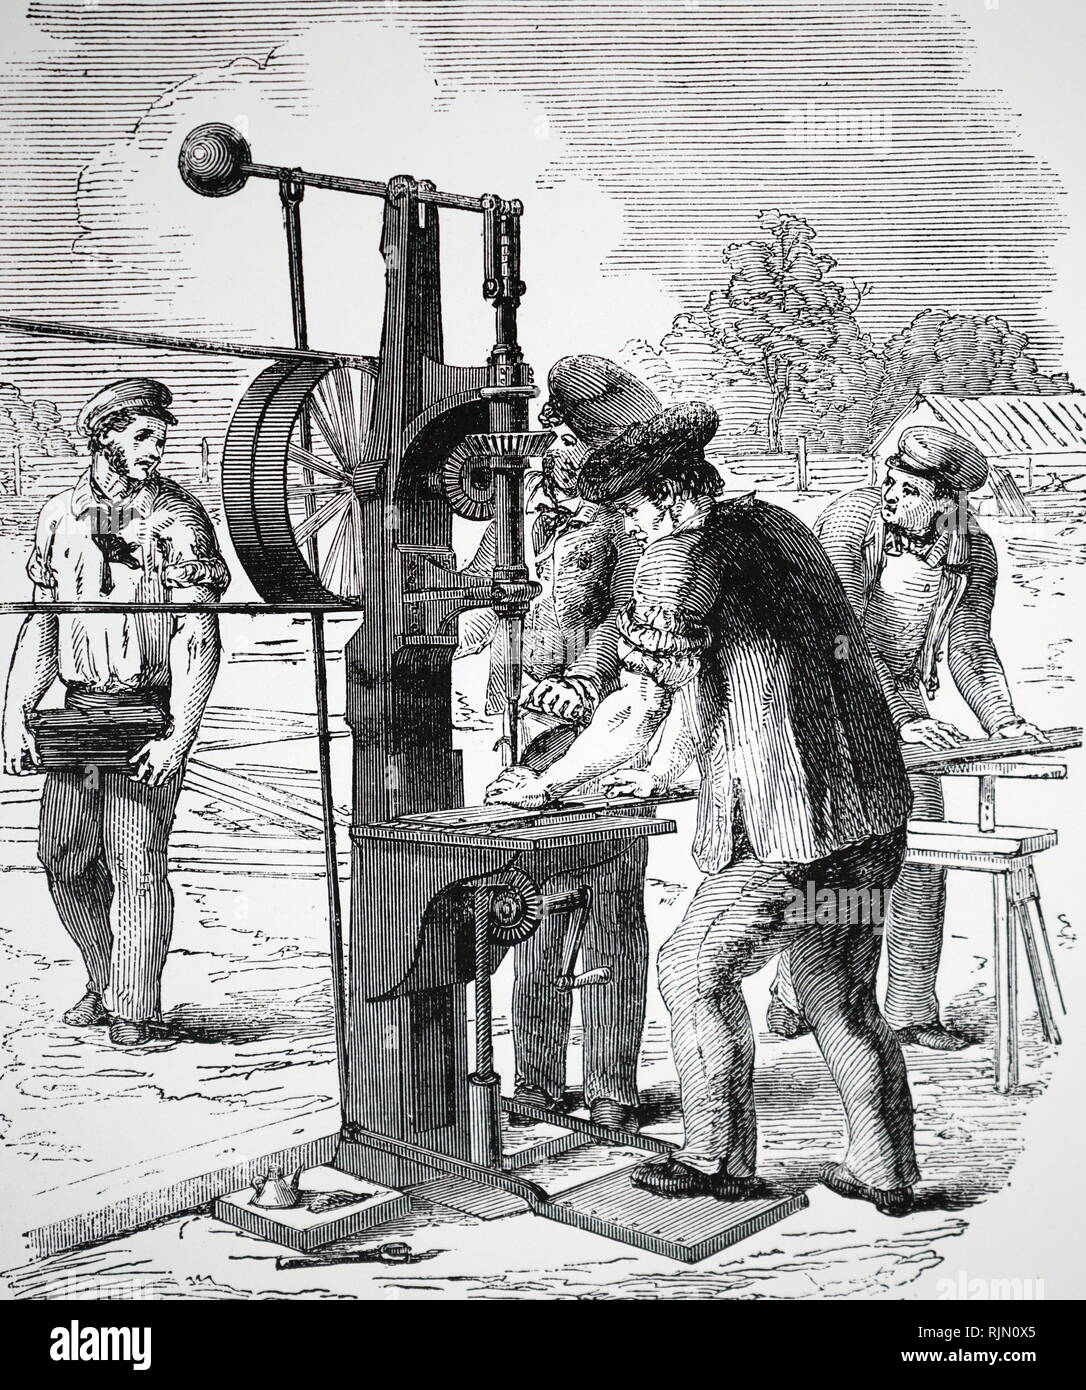 Illustration showing Nasmyth's drilling machine, used to perforate iron bars to take rivets during the construction of the Crystal Palace. 1850 Stock Photo